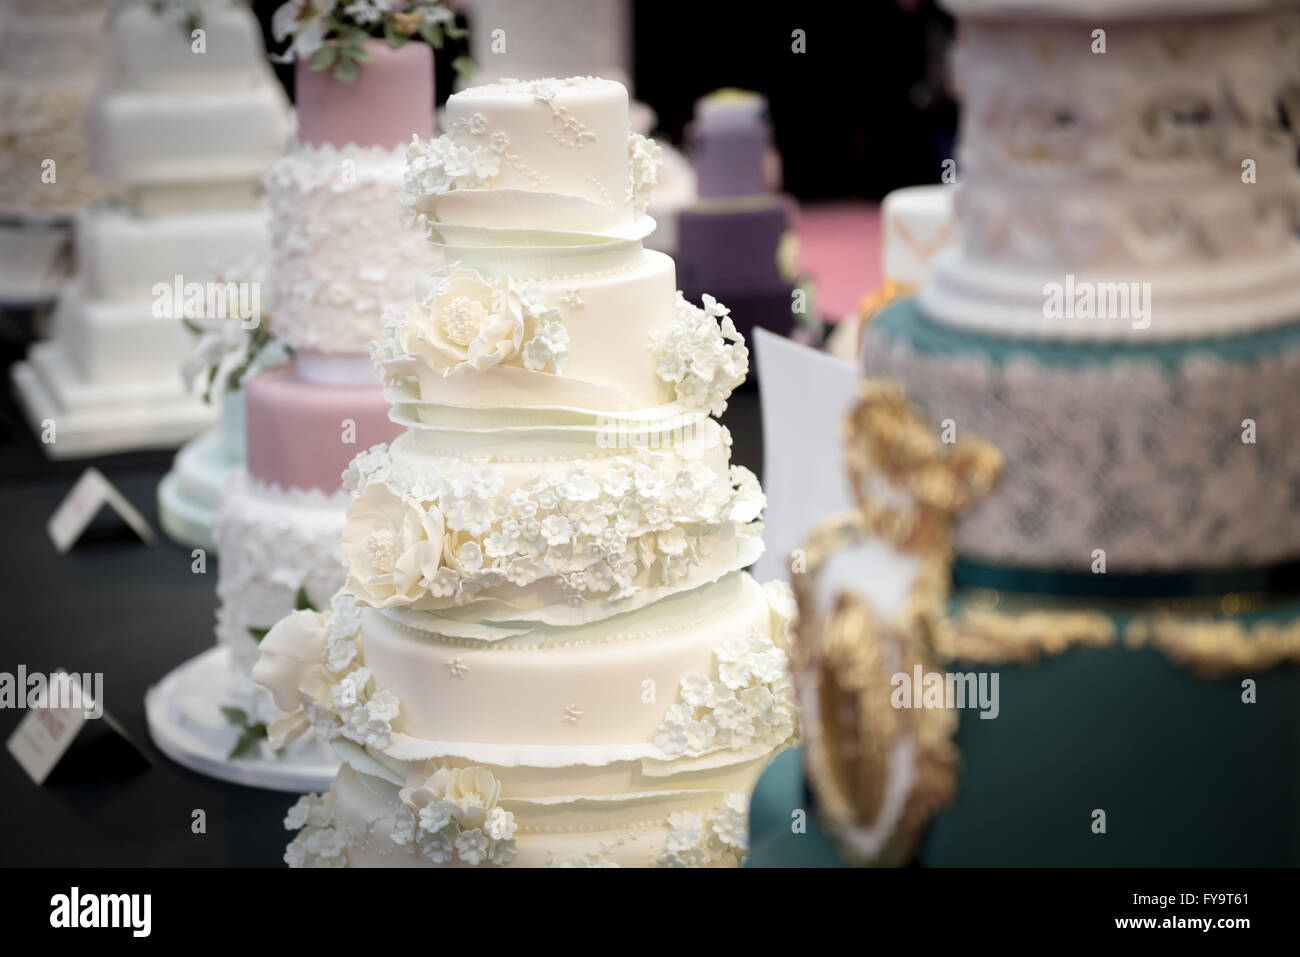 Decorative Wedding Cakes With Edible Flowers At Cake International